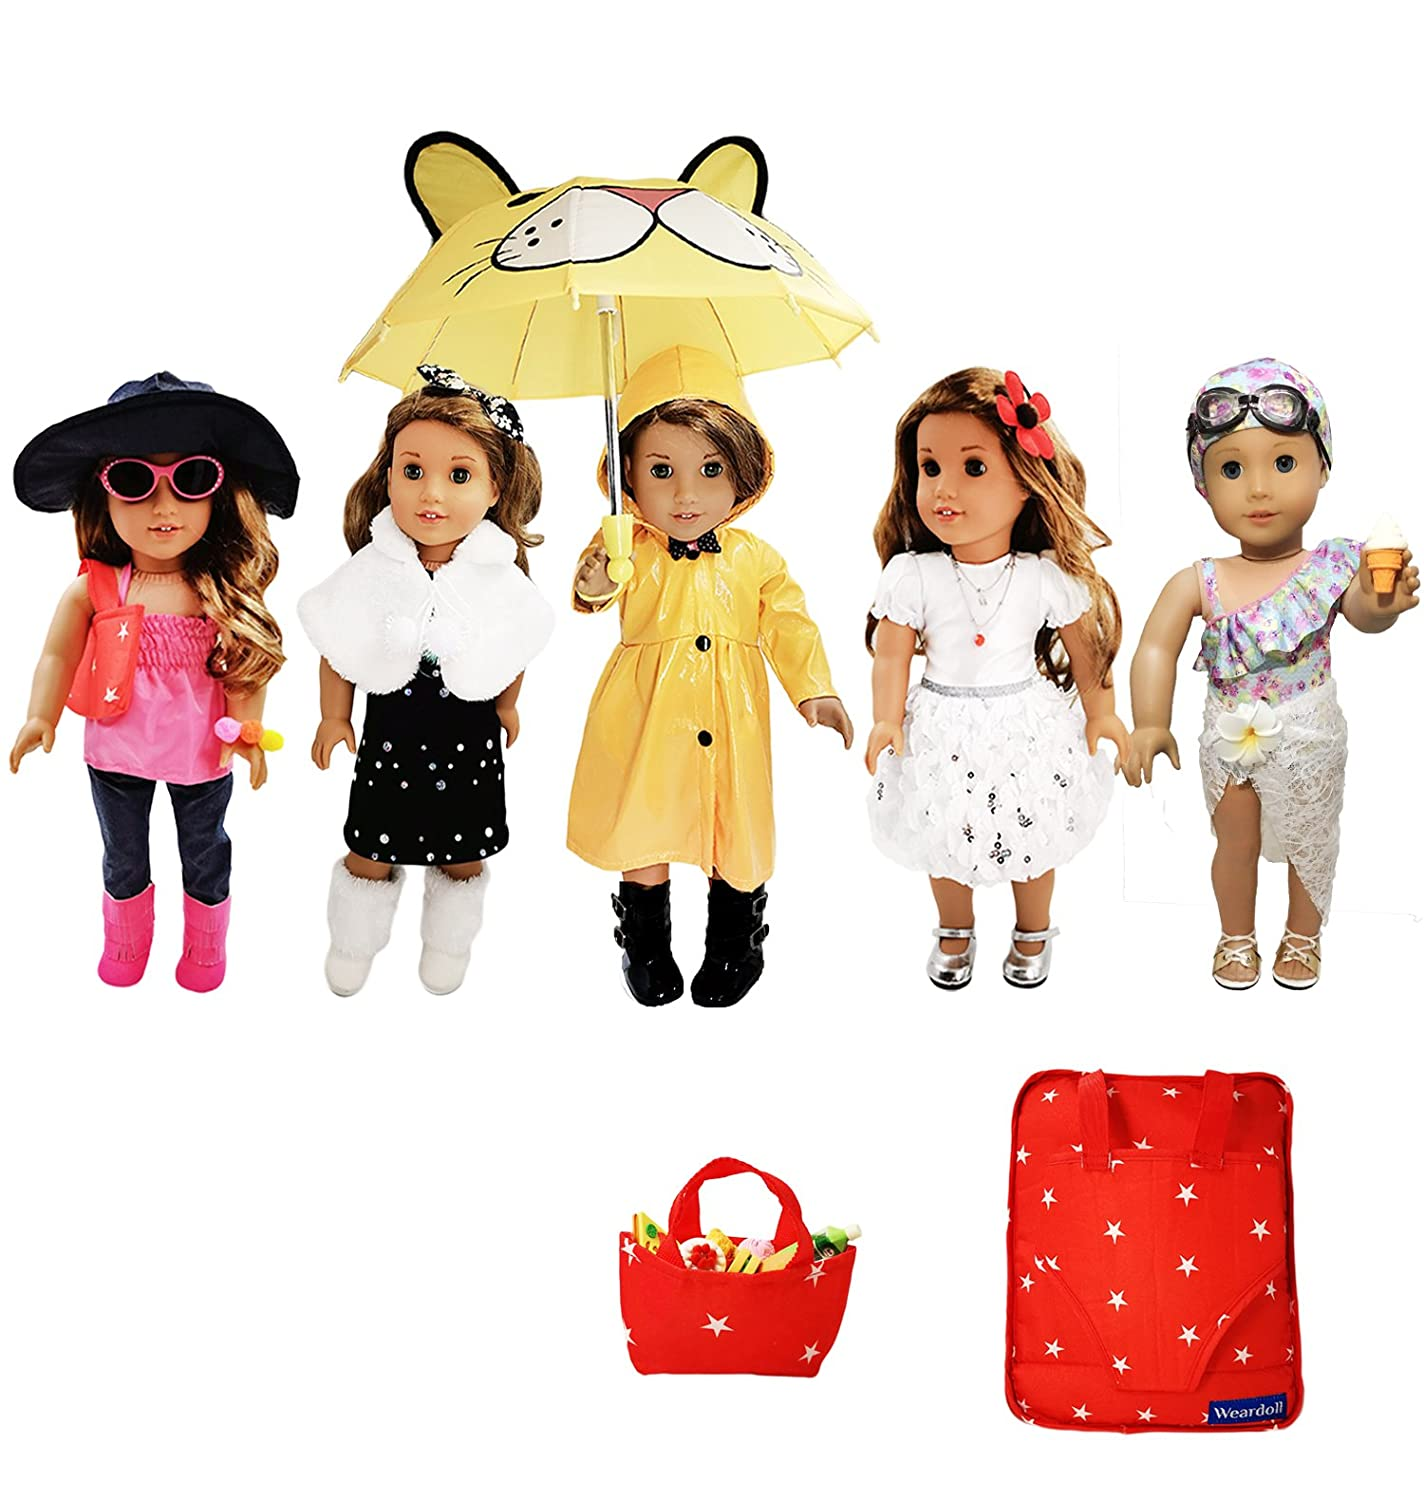 Weardoll 18inch Doll Clothes and Accessories - 33 Items, 18 inch Doll Accessories fits American Girl Doll Accessories, Mylife Doll Accessories